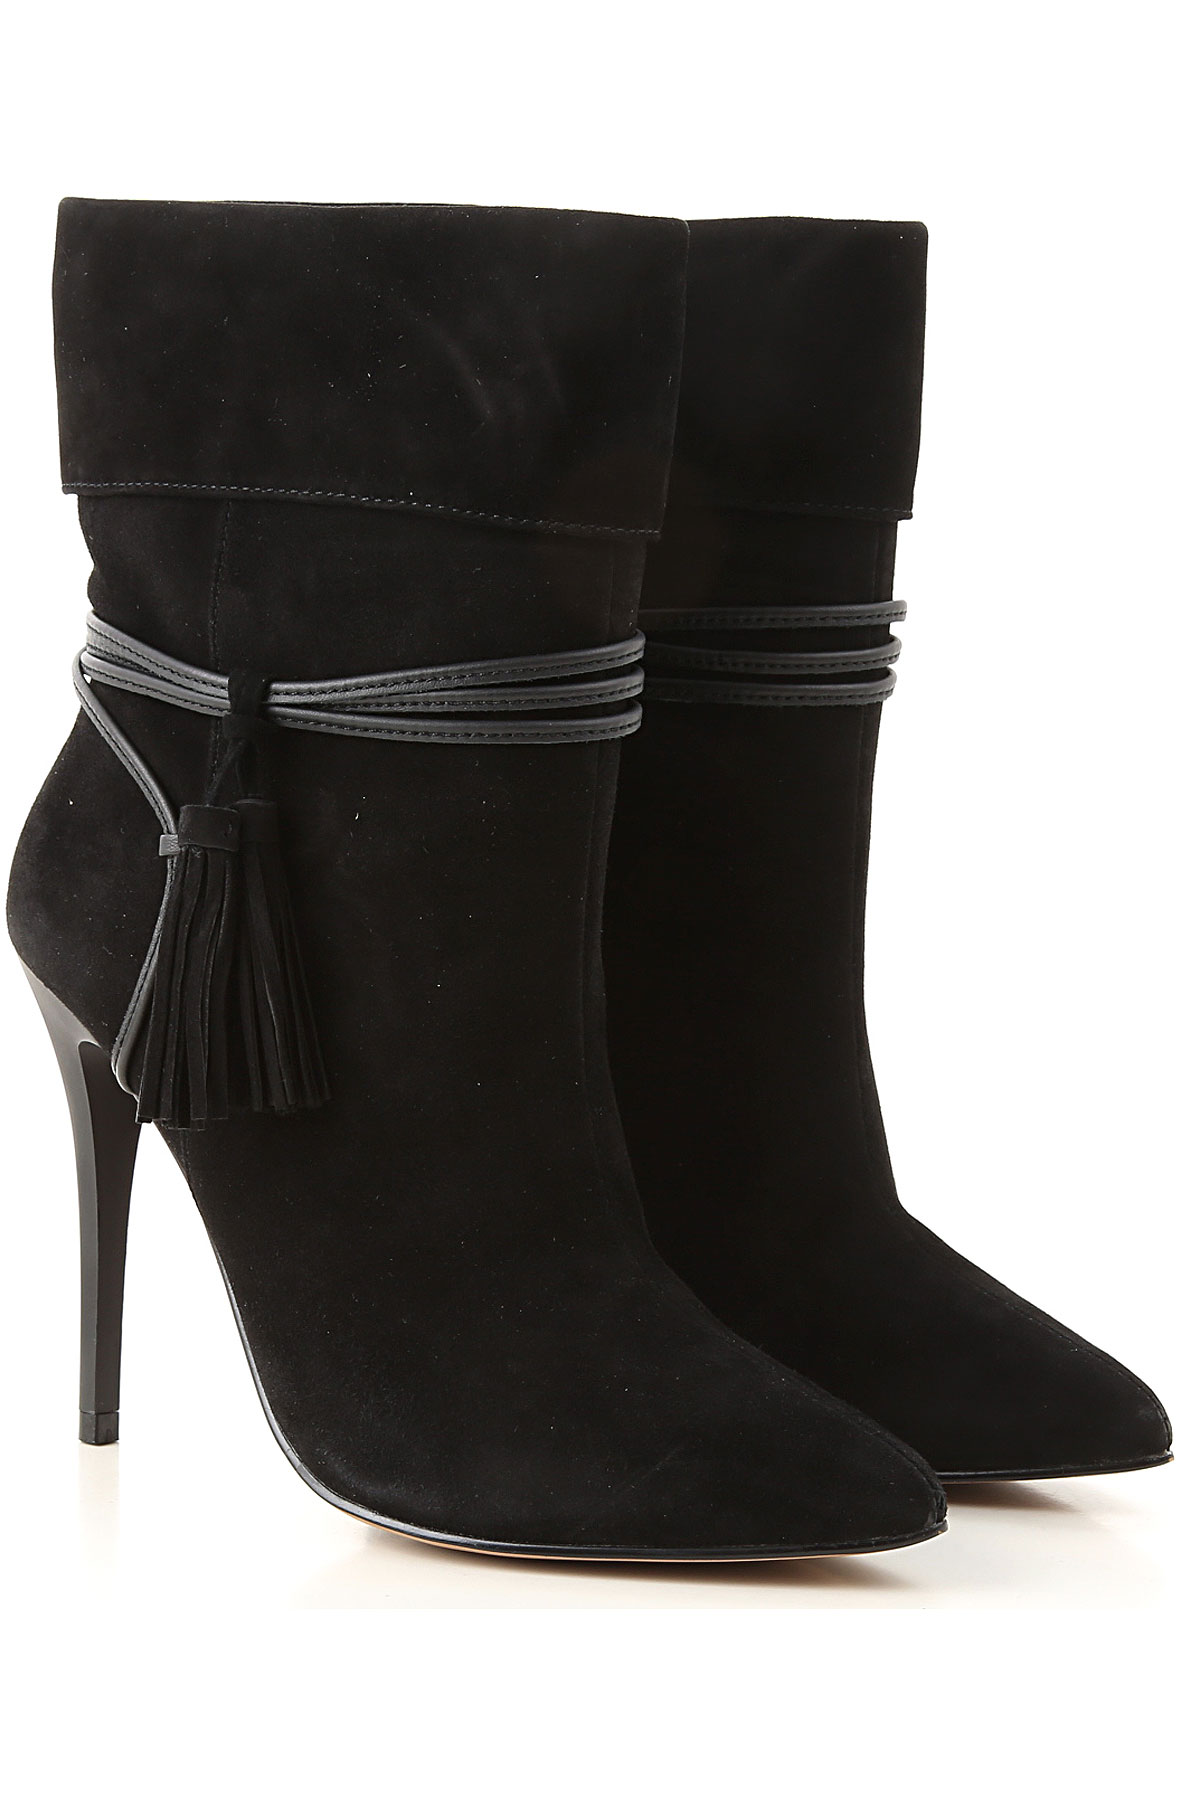 Guess Boots for Women, Booties On Sale, Black, Suede leather, 2019, 5 6 7 9